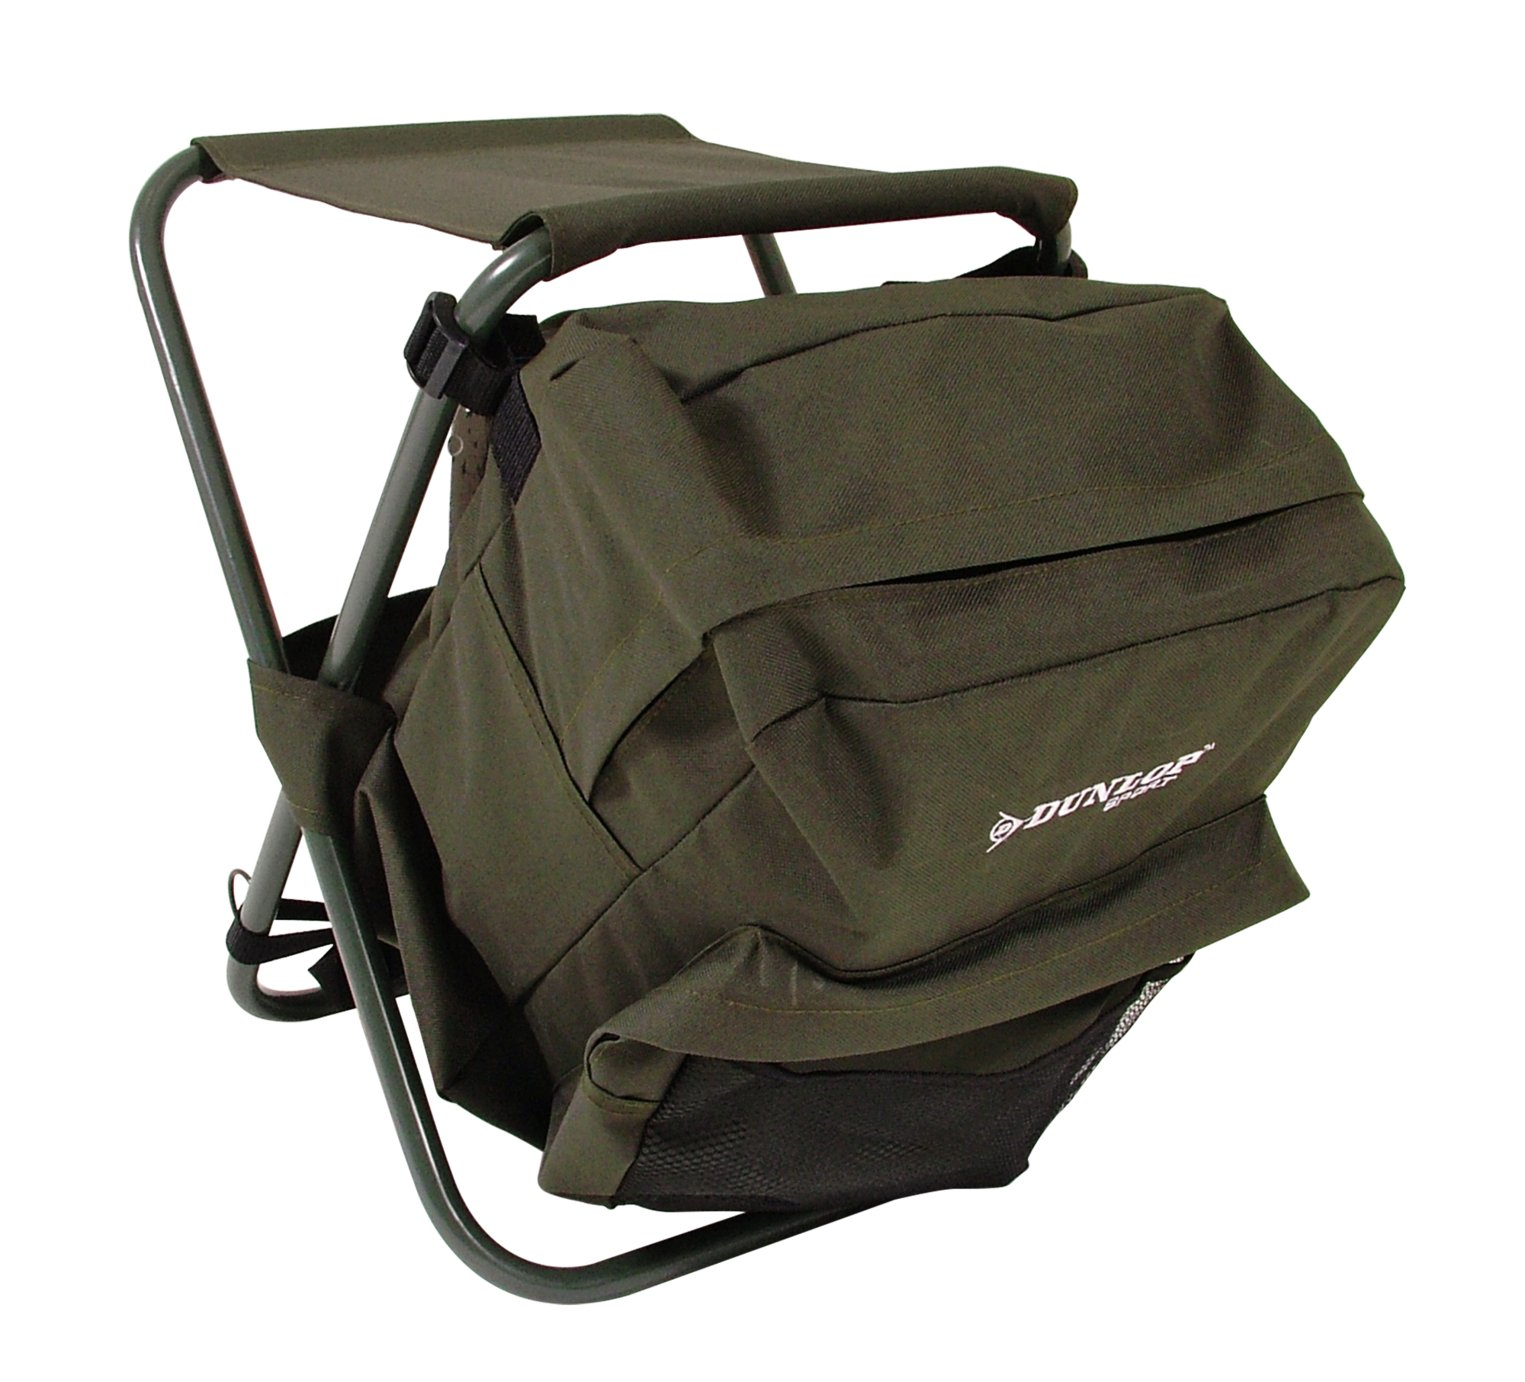 Dunlop Fishing Stool with Backpack from Dunlop